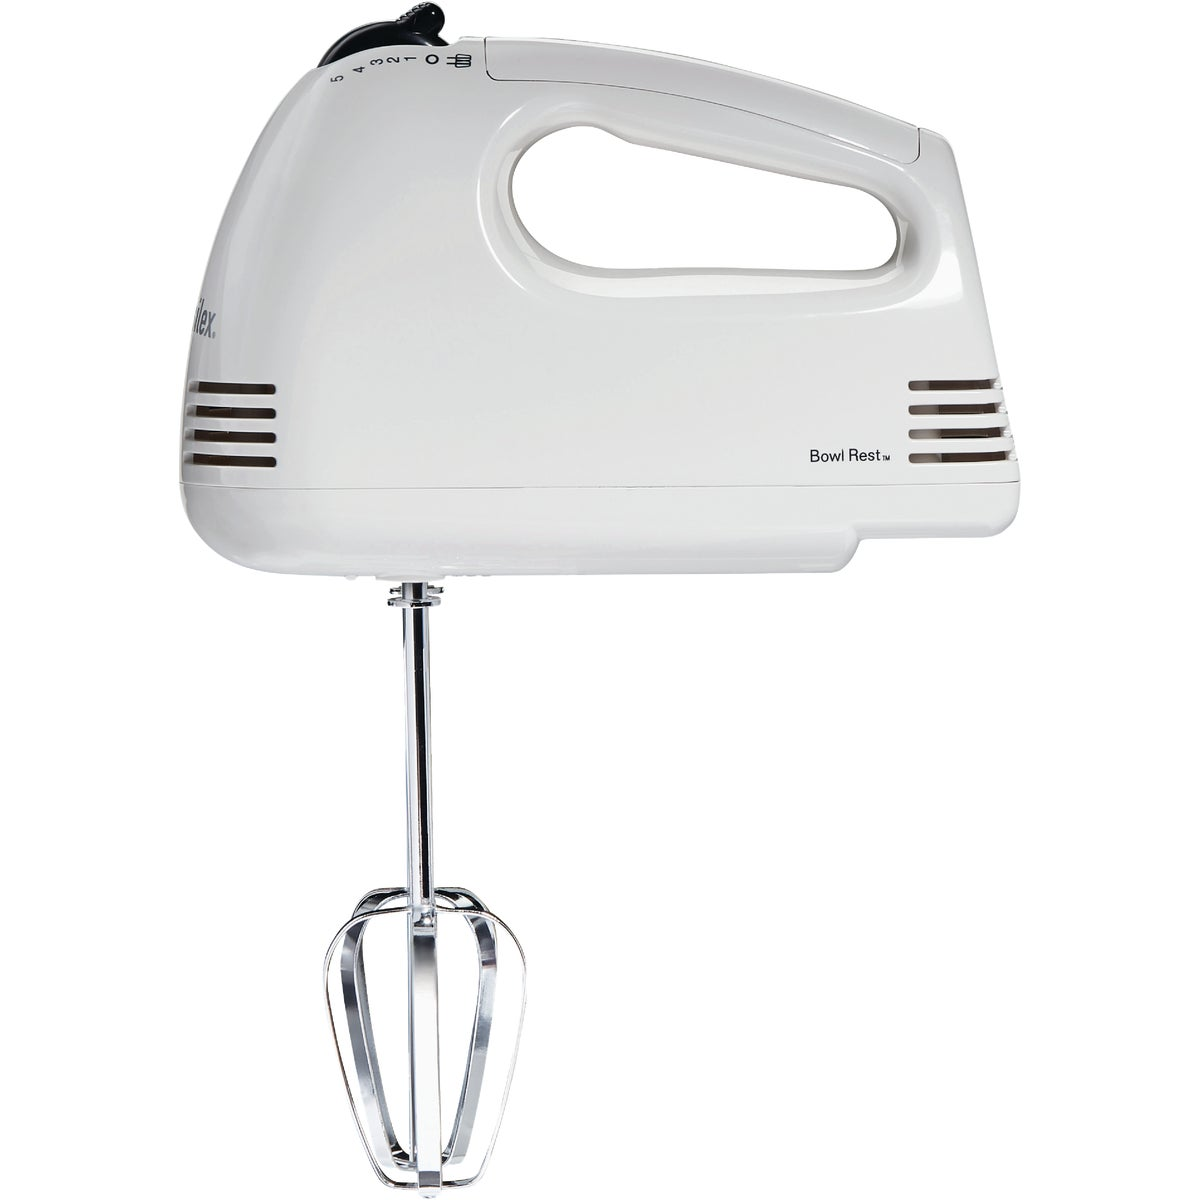 5 SPEED HAND MIXER